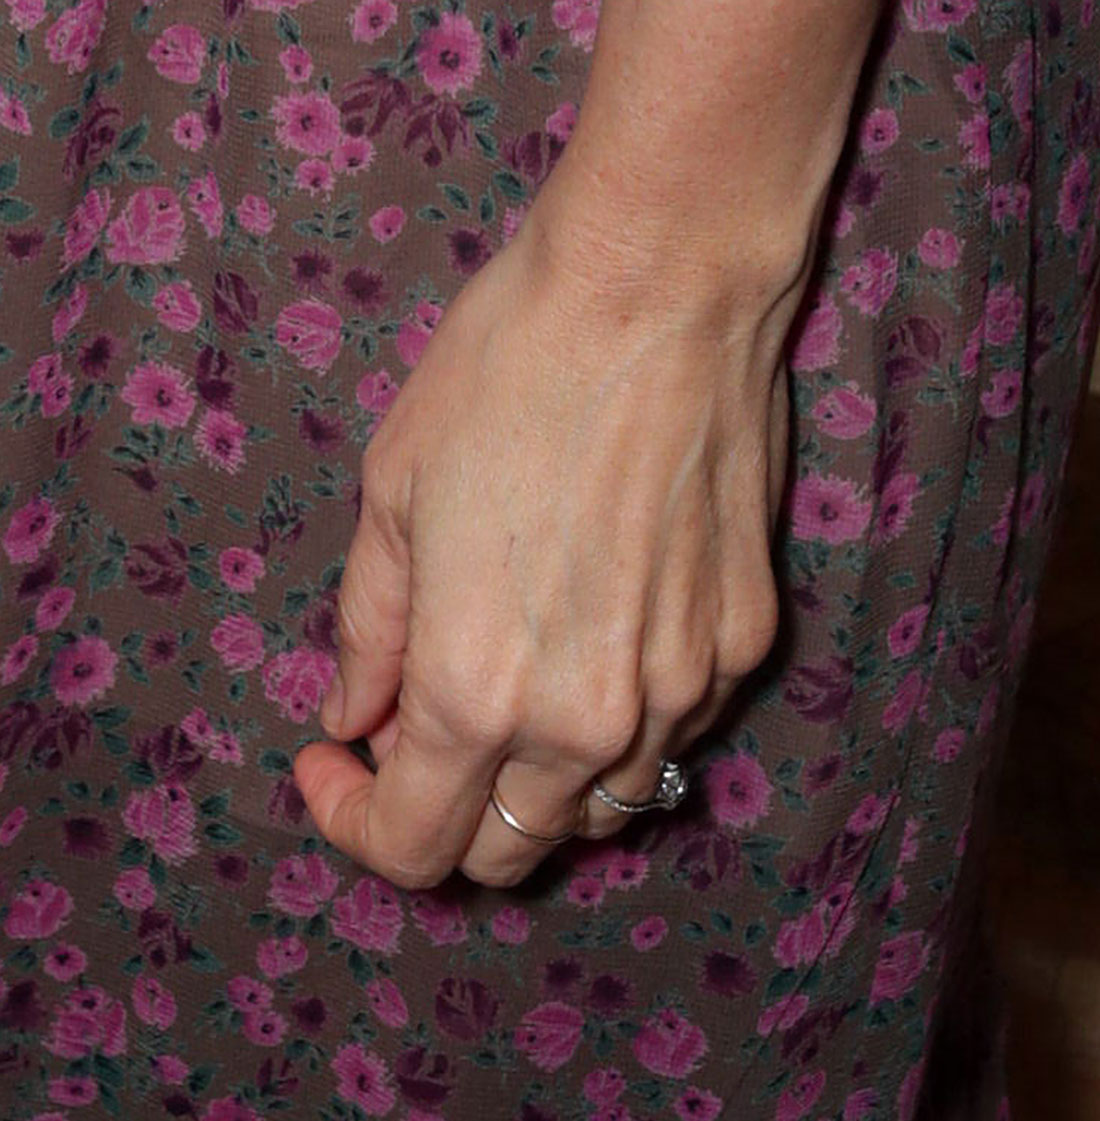 Kristen Wiig Engagement Ring May 13, 2019 - It was confirmed on August 16 that the former SNL cast member was, in fact, wearing a giant engagement ring from boyfriend Avi Rothman while attending the Booksmart screening on May 13. Although it's difficult to make out the shape of the center stone at this point, one thing that is visible is the lovely silver-hued band.